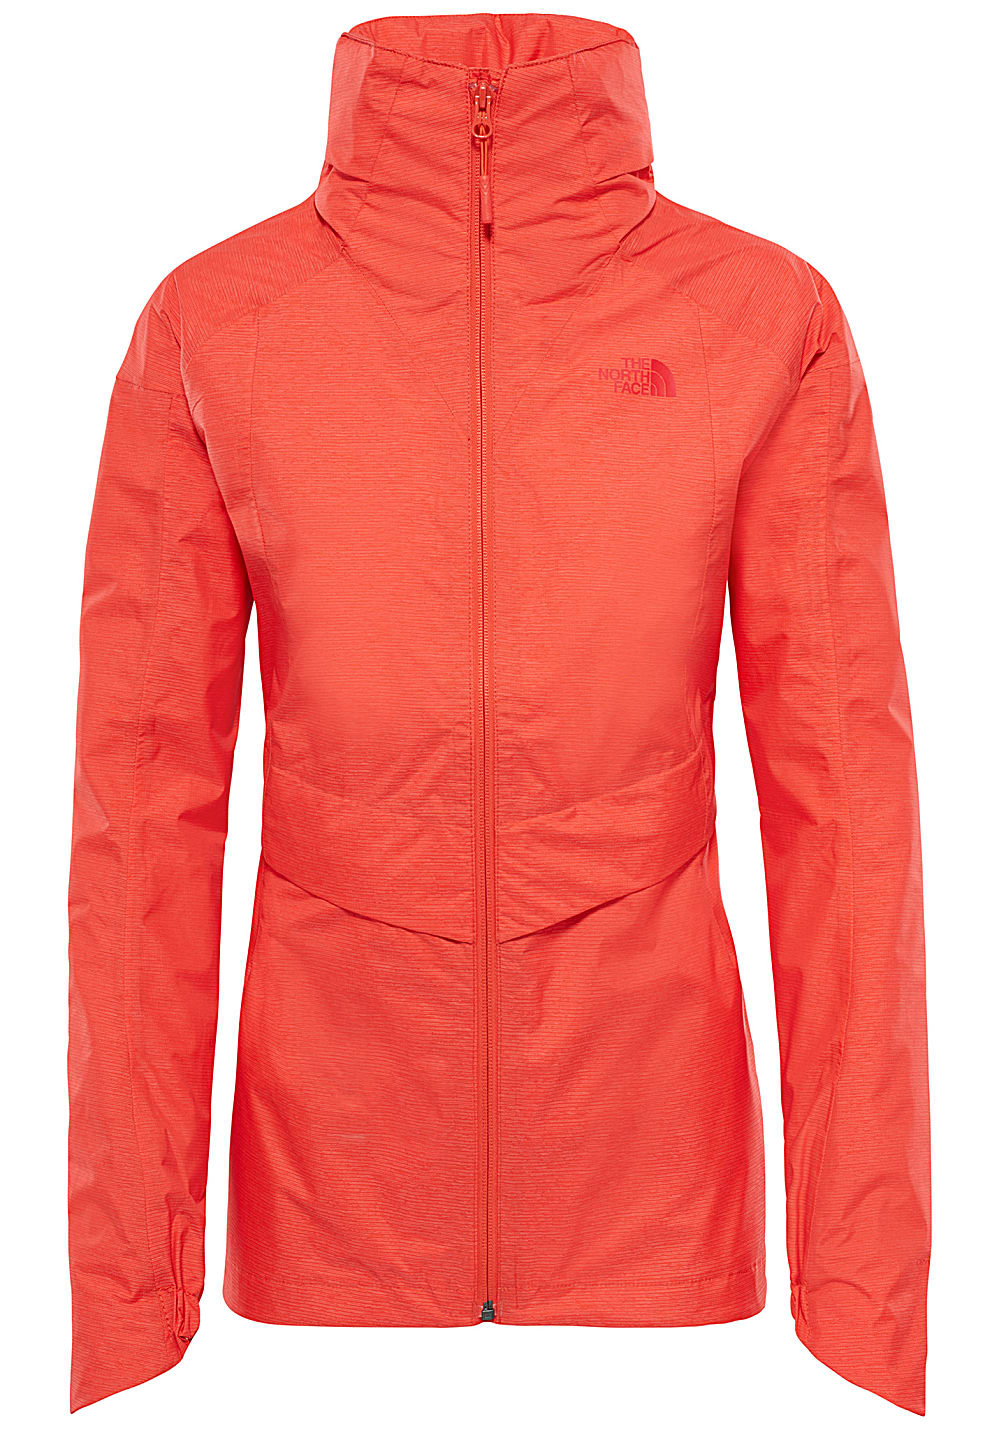 a9b098fb3 THE NORTH FACE Inlux Dryvent - Outdoor Jacket for Women - Orange